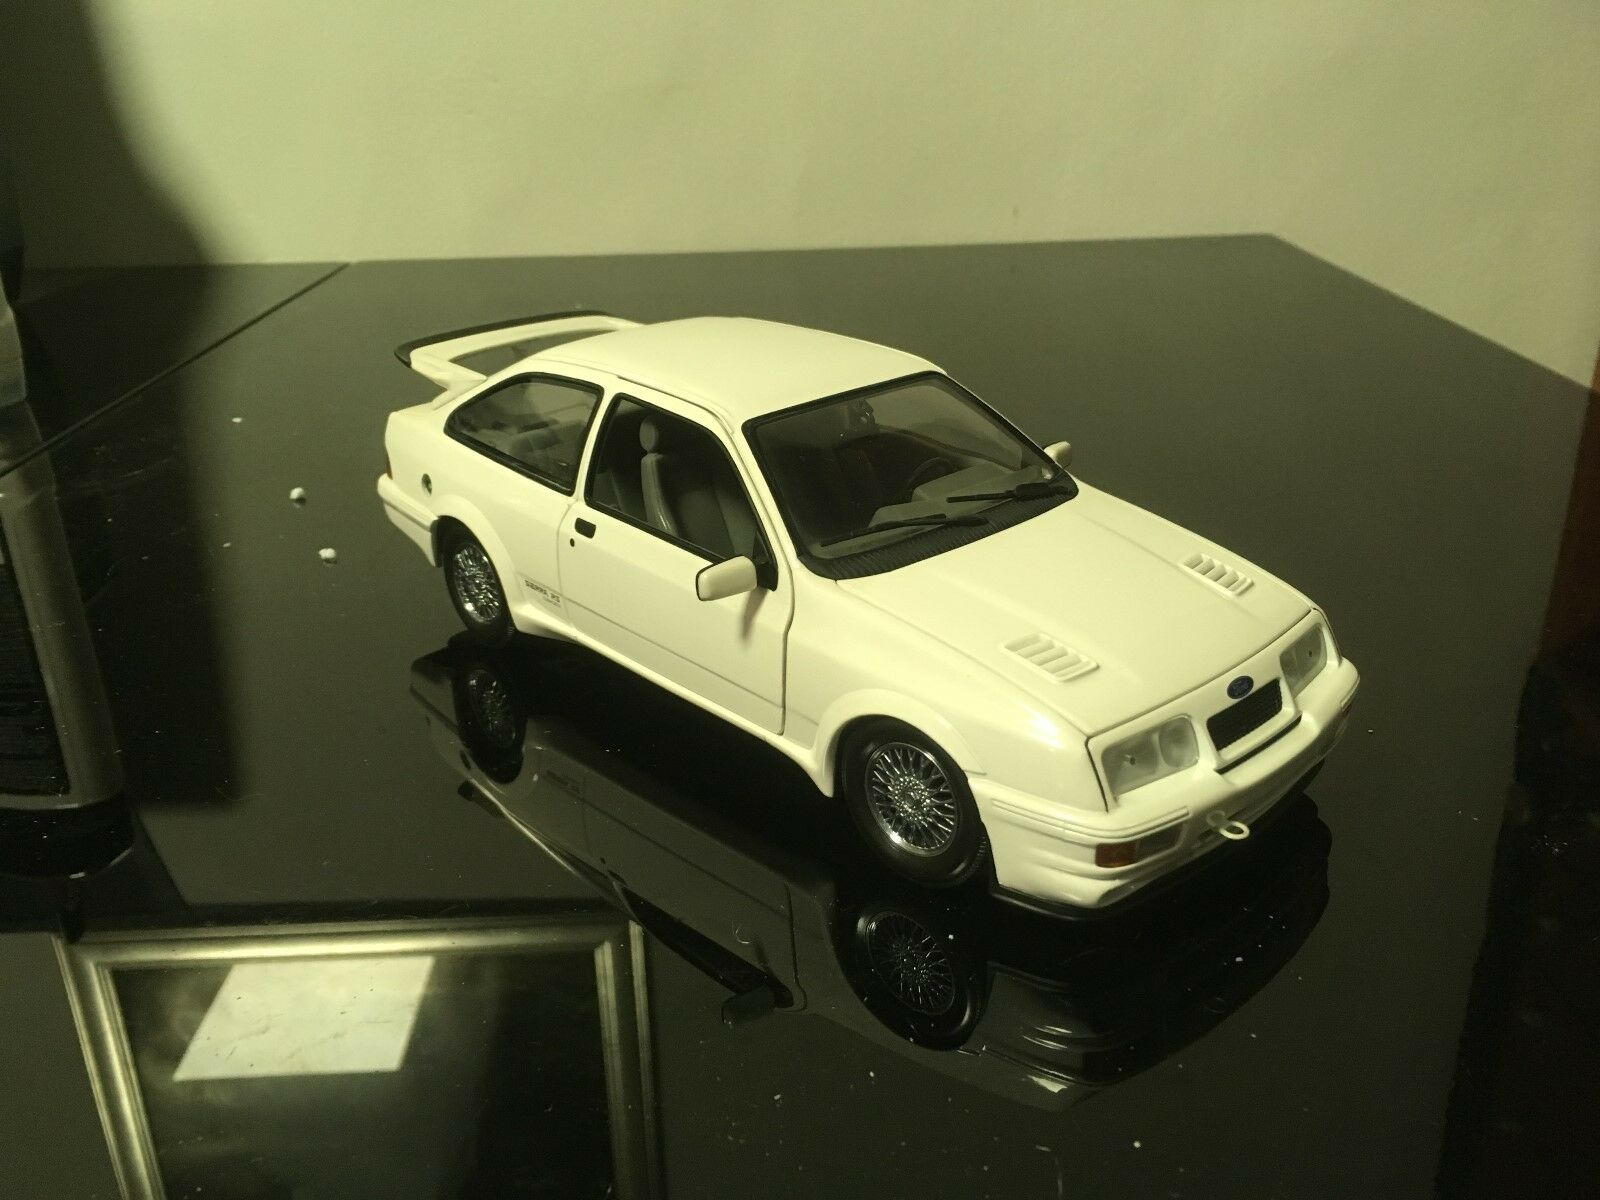 Ford Sierra RS Cosworth white 1 18 Minichamps